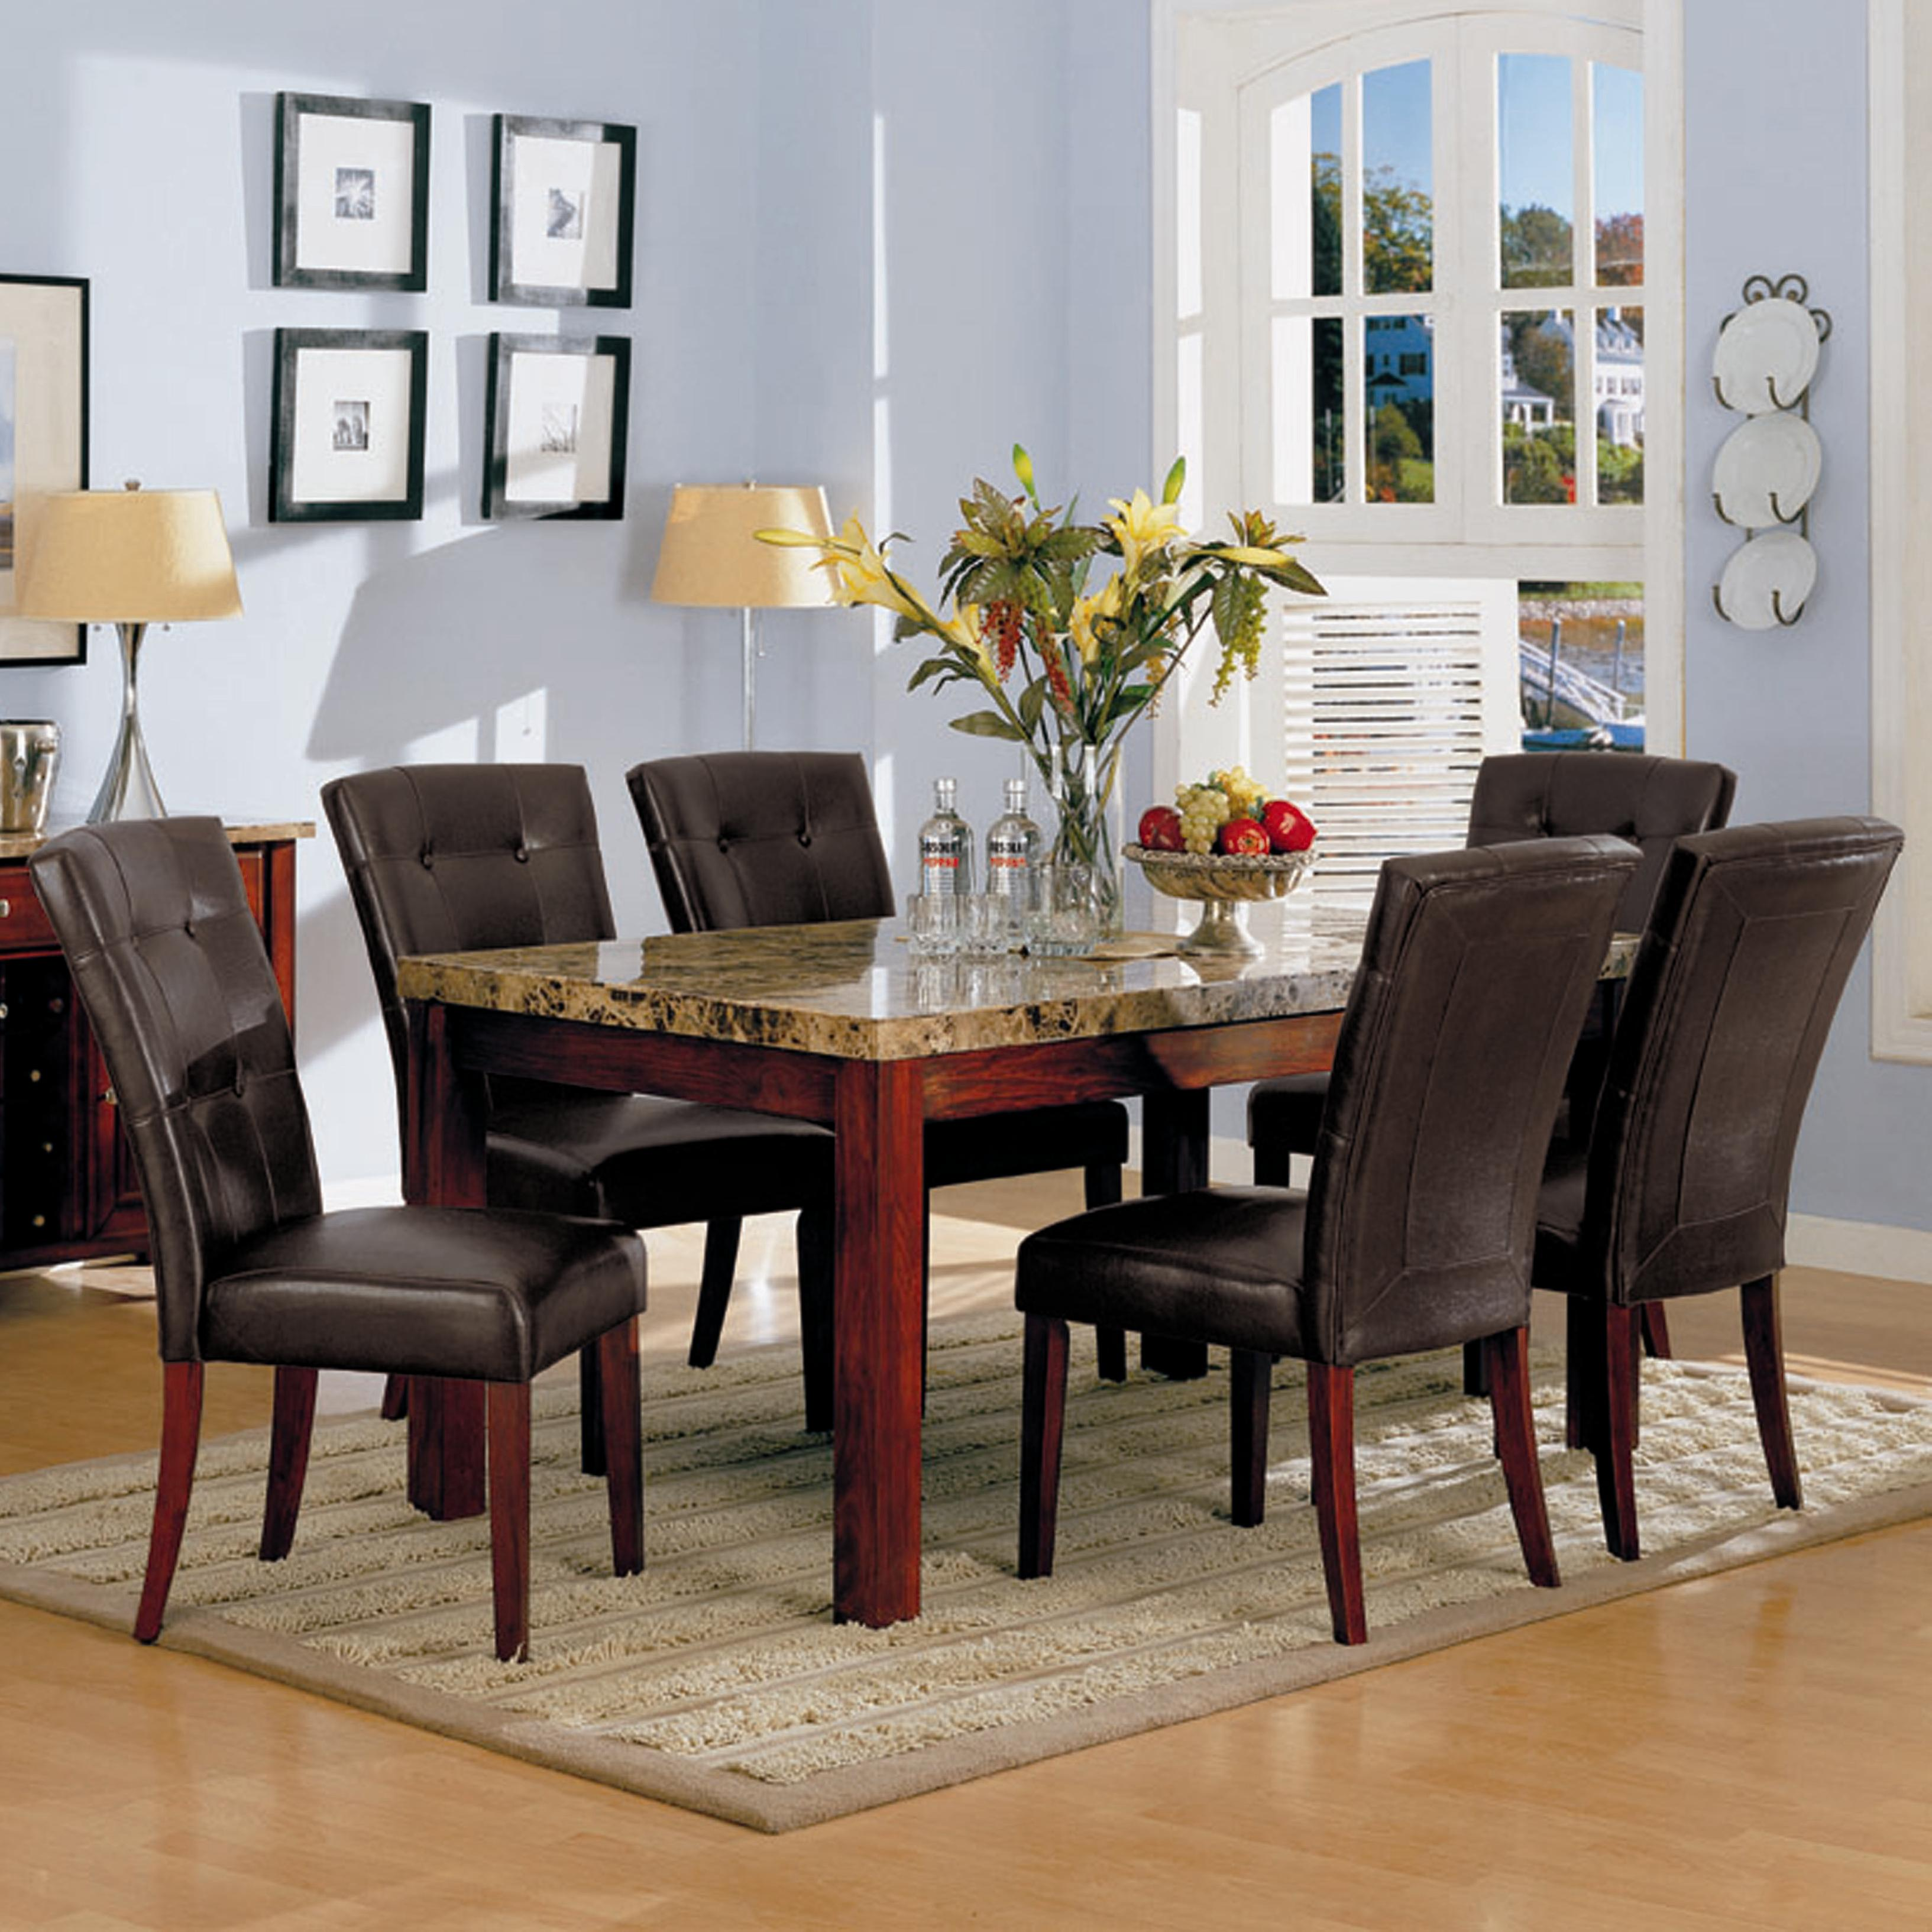 7045 Bologna 7 Piece Dining Set by Acme Furniture at A1 Furniture & Mattress